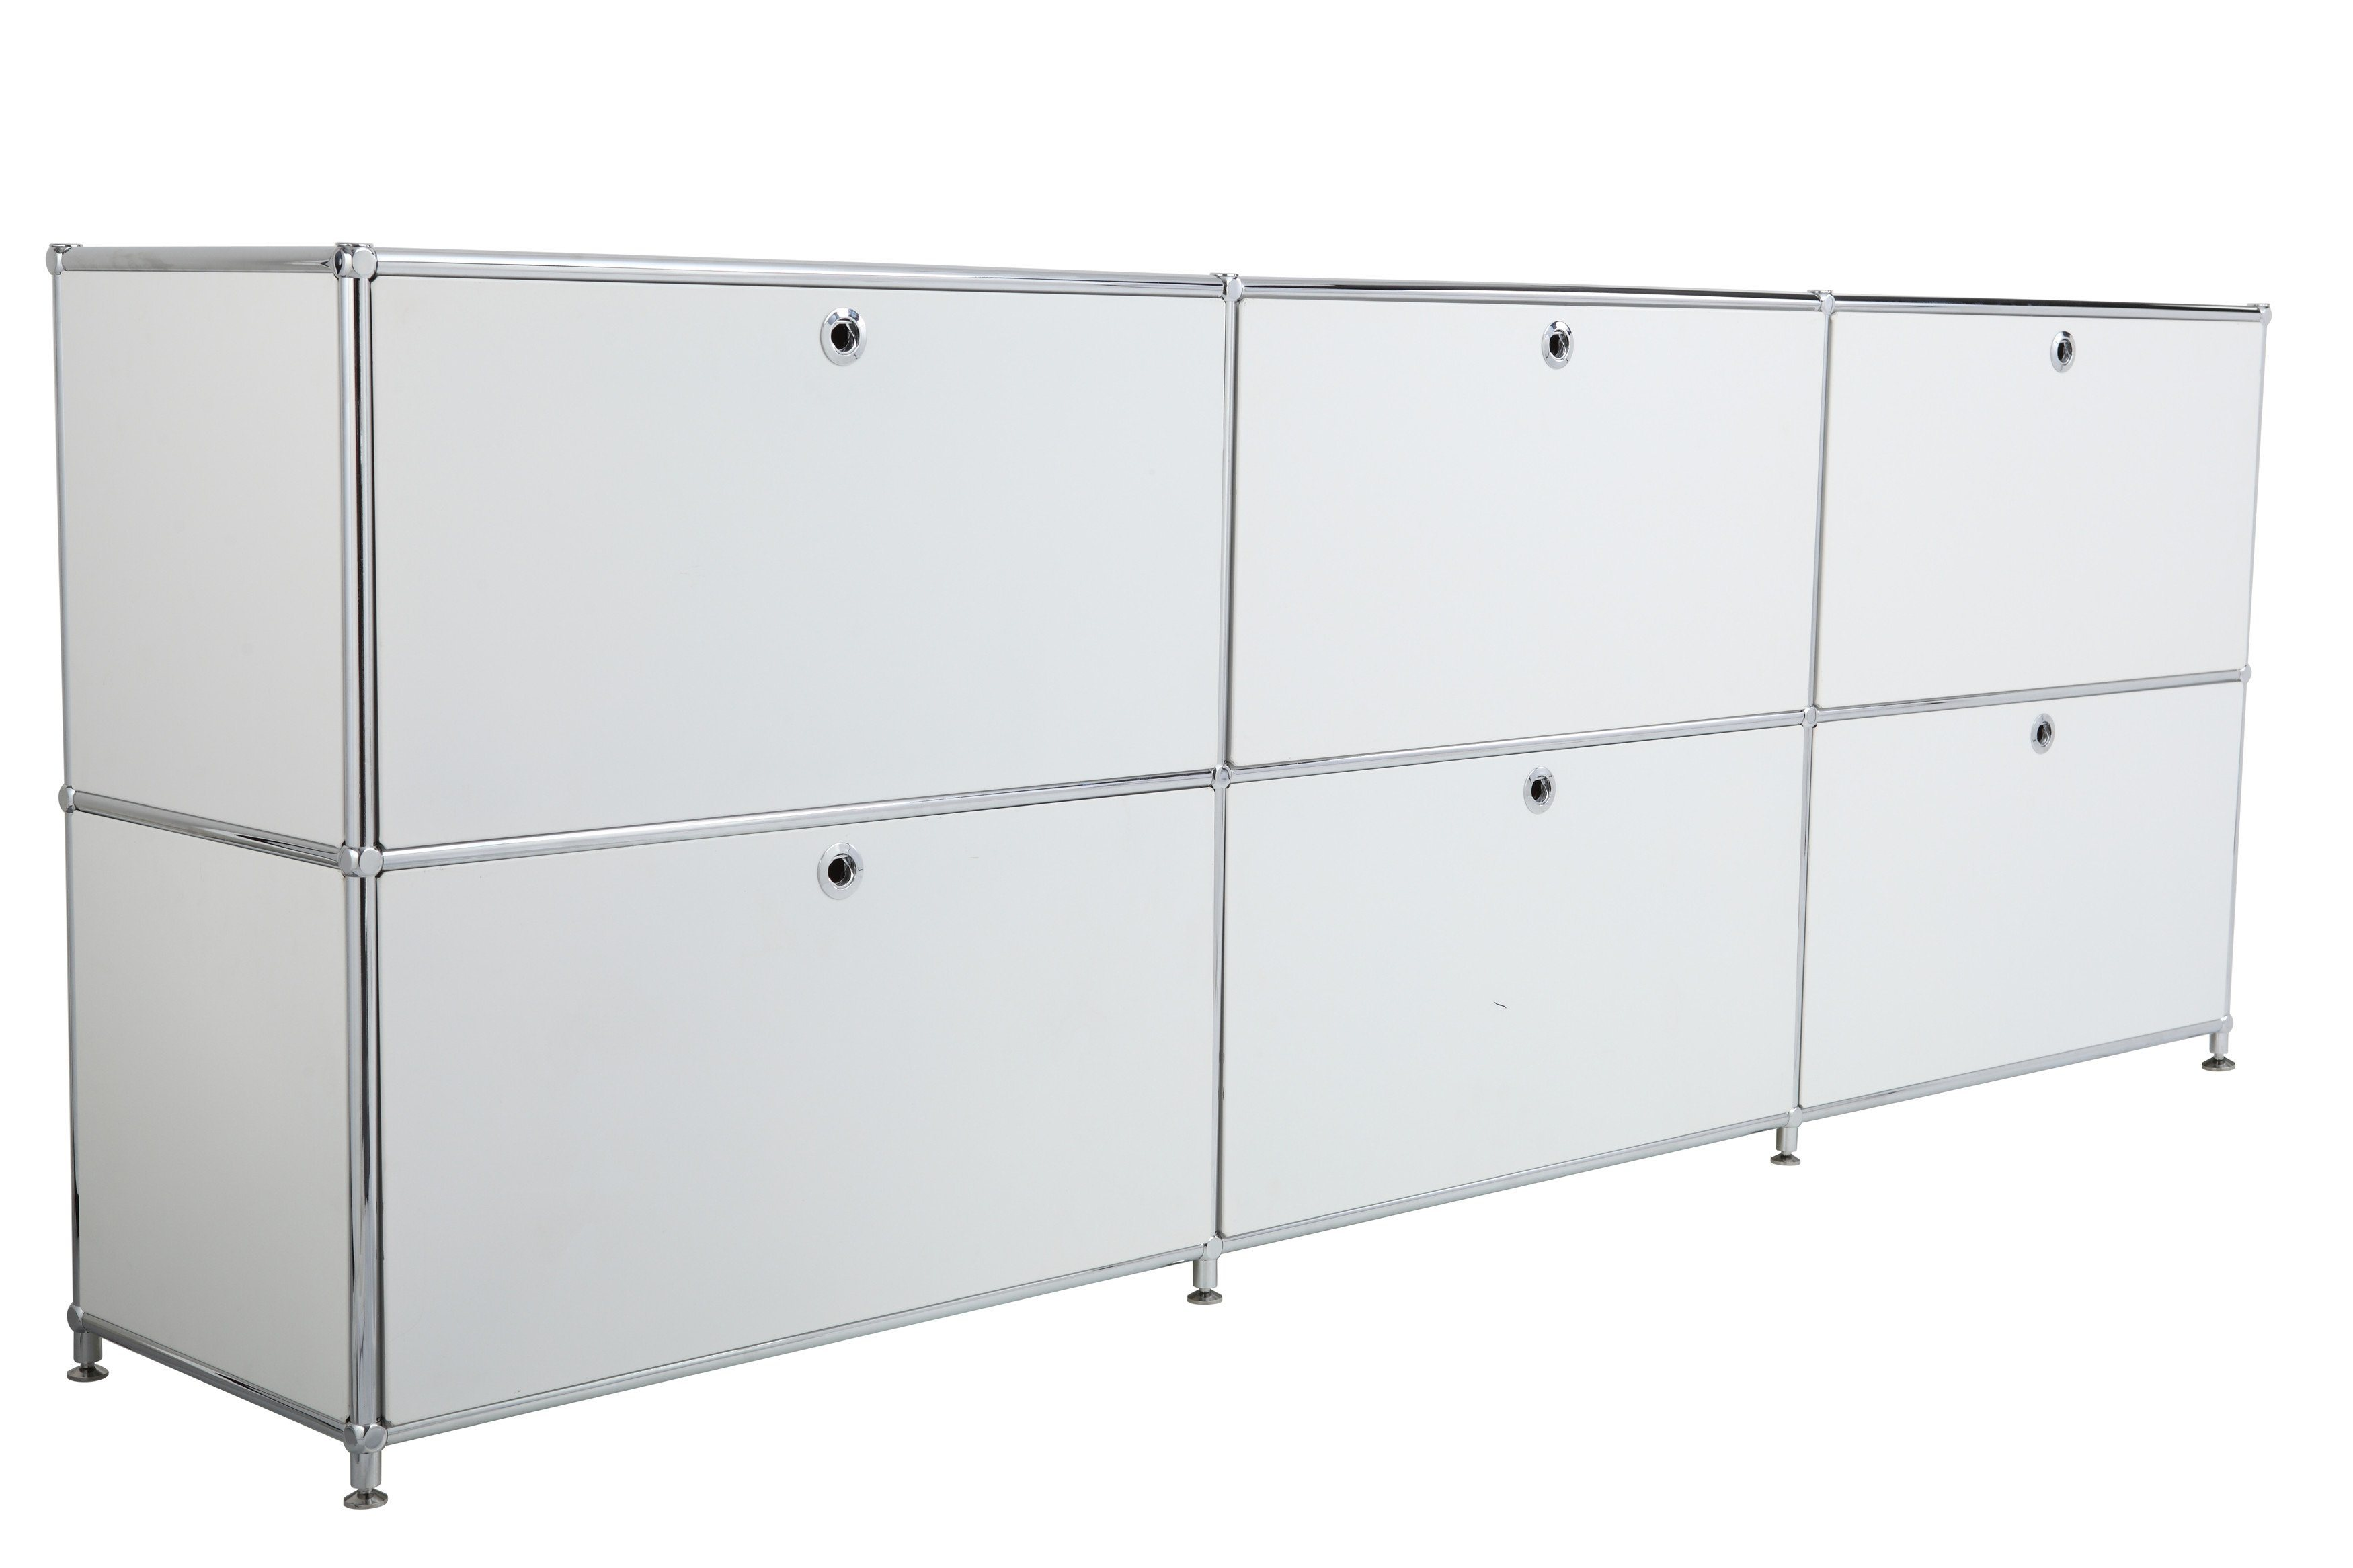 Transcube Modular Office/Home Design Display Filing Cabinet